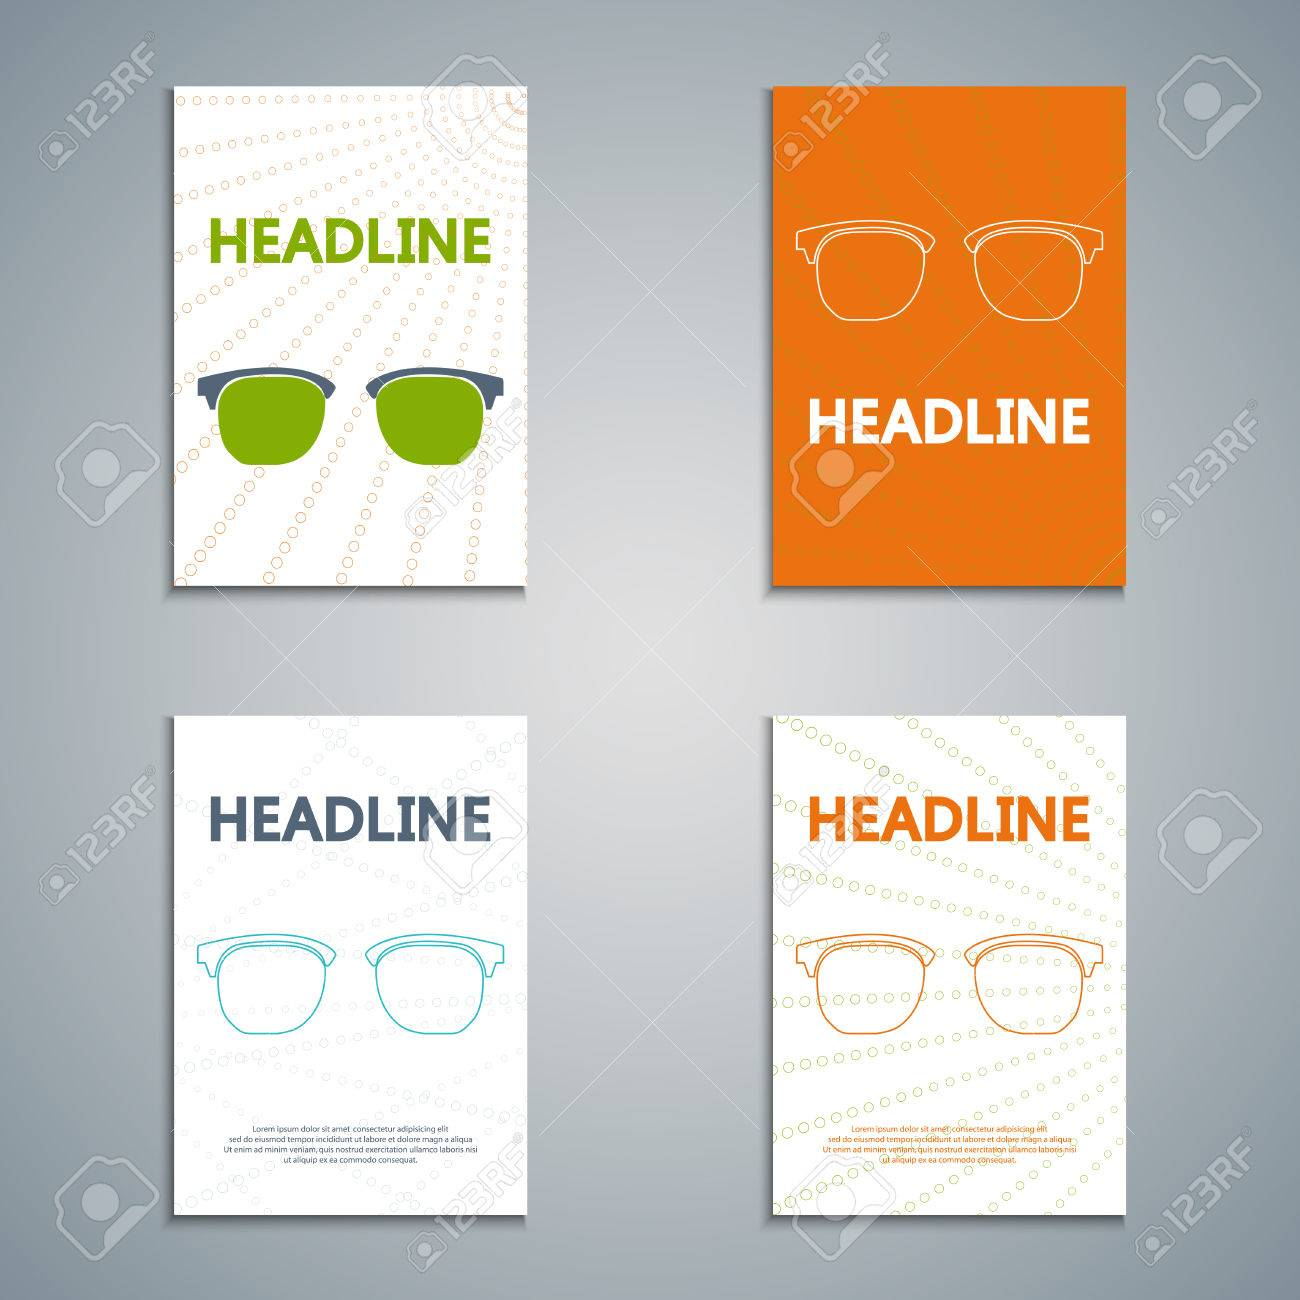 abstract creative brochure for your summer business sunglasses abstract creative brochure for your summer business sunglasses ad template design for banners presentations